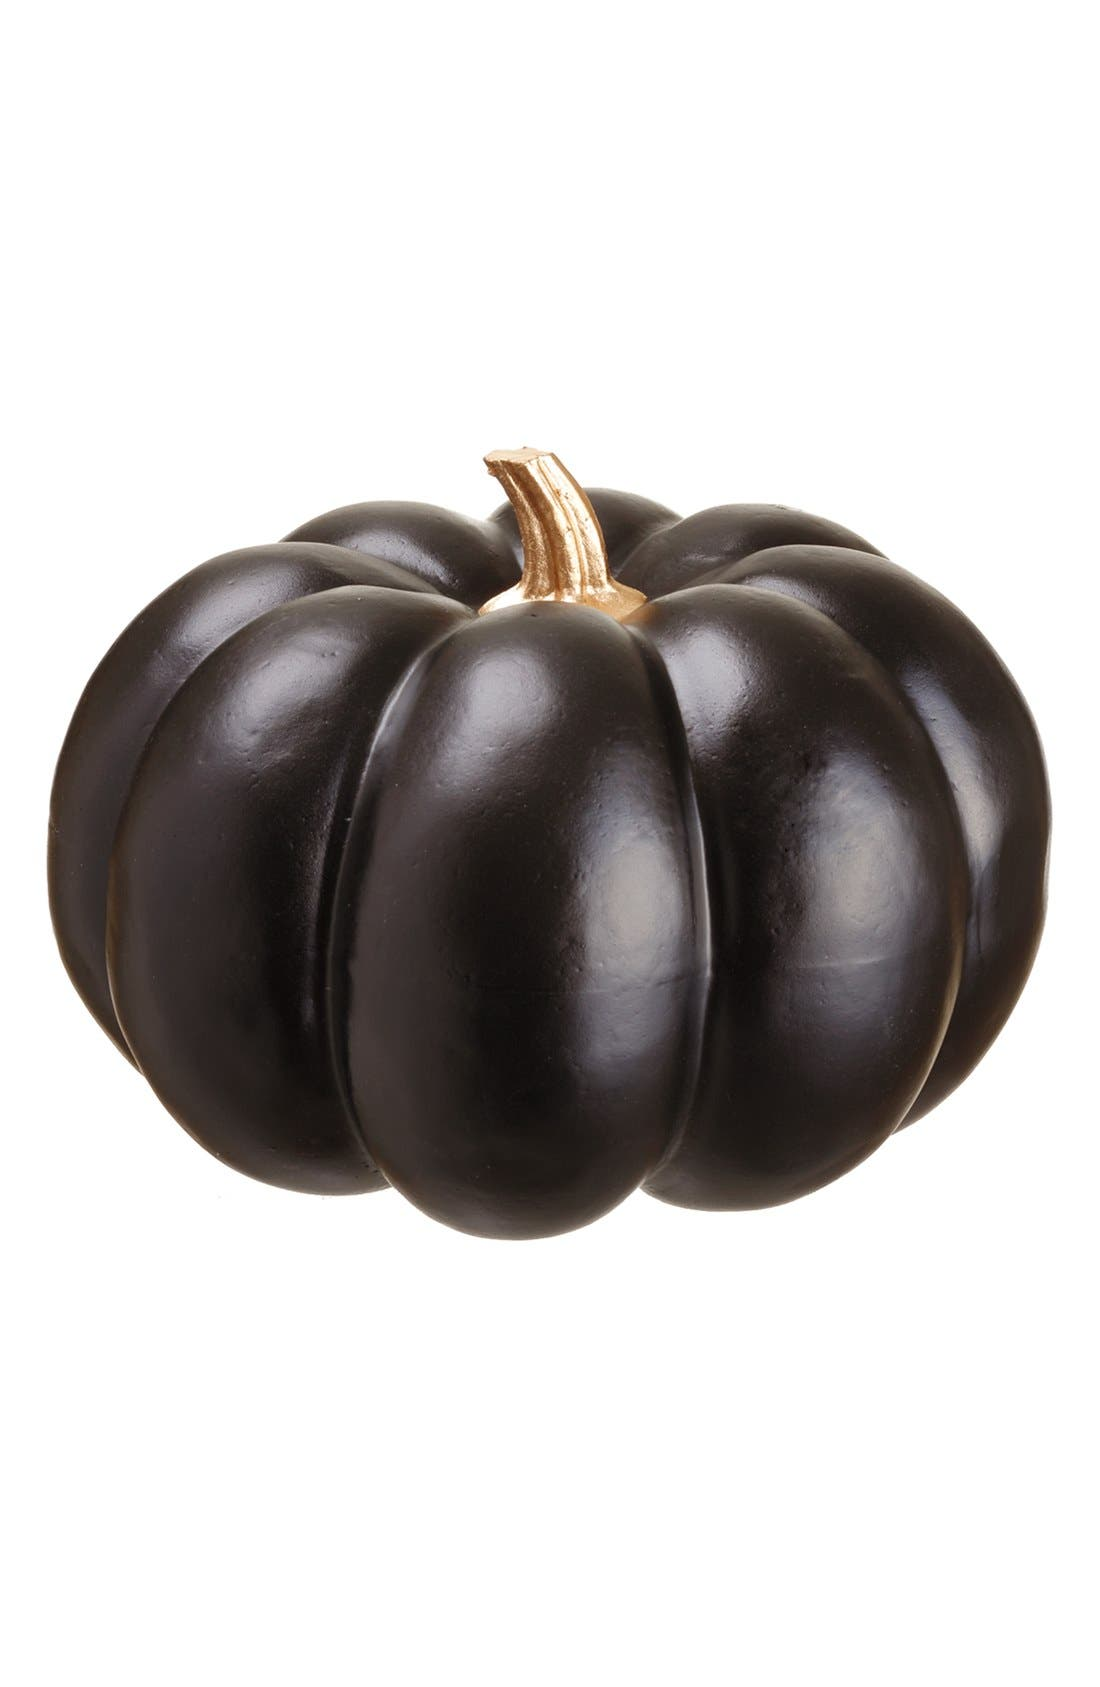 Alternate Image 1 Selected - ALLSTATE Weighted Pumpkin Decoration